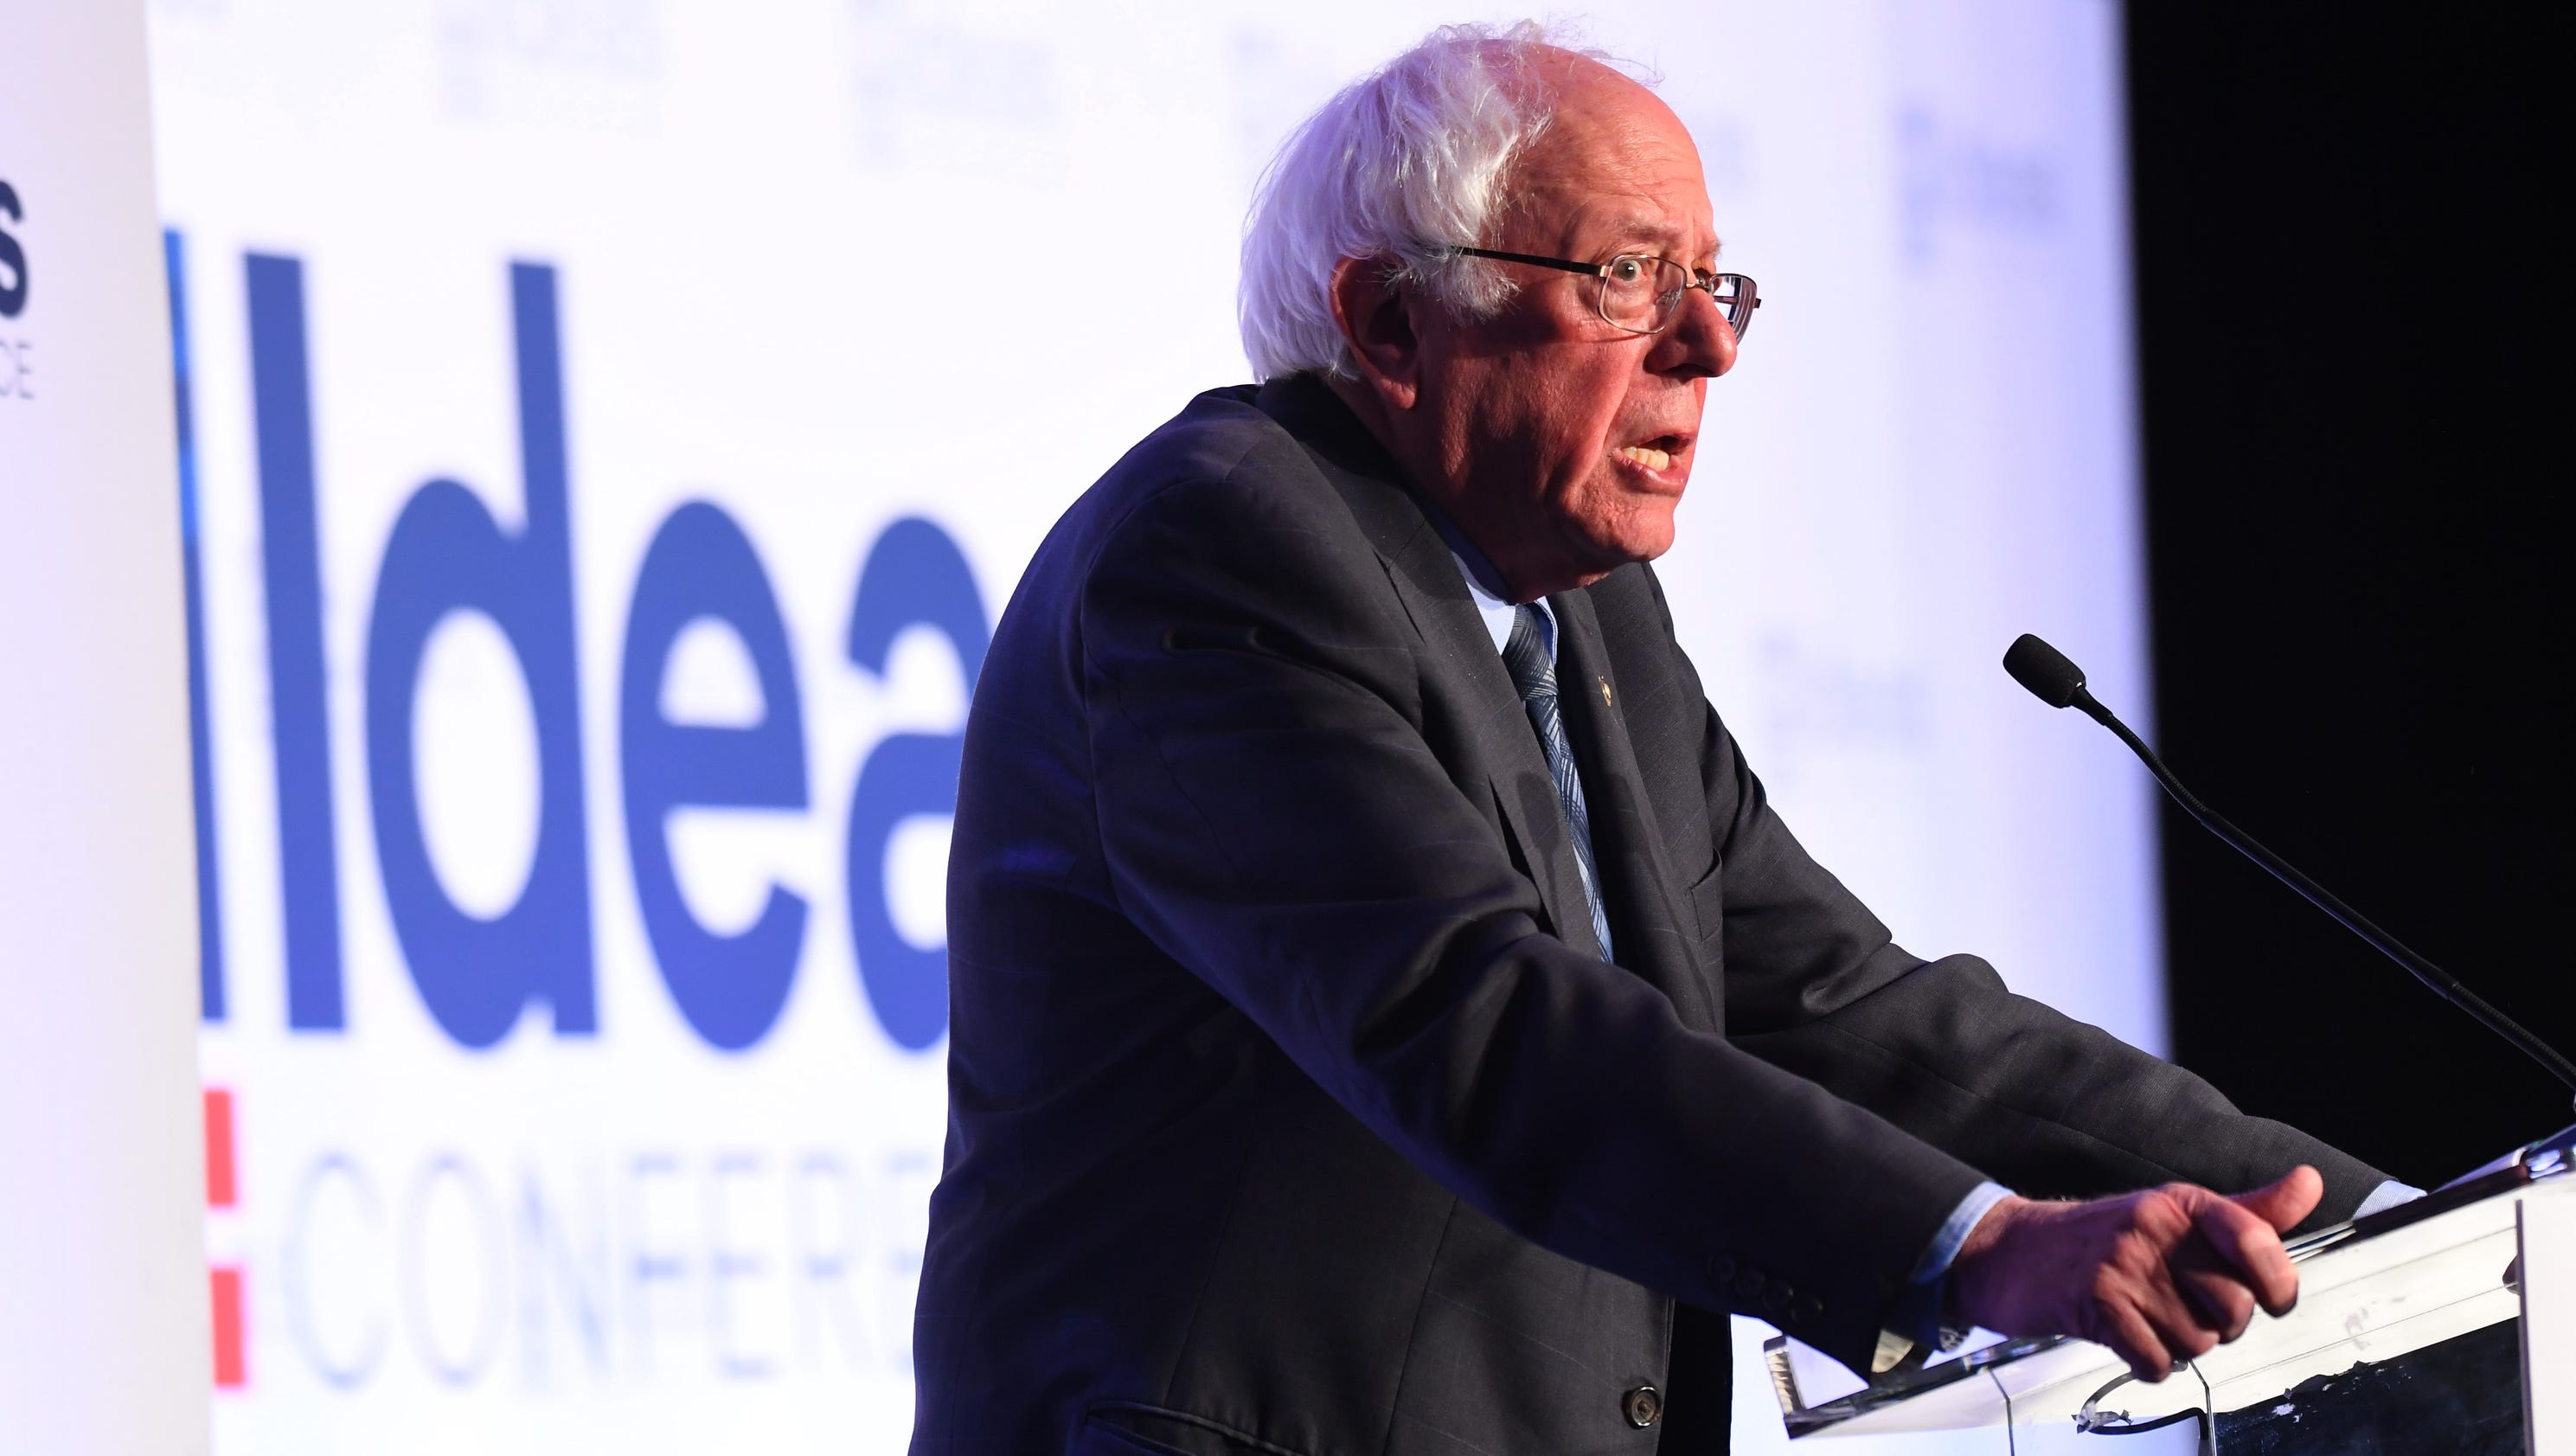 Bernie Sanders says this issue halts progressive policies